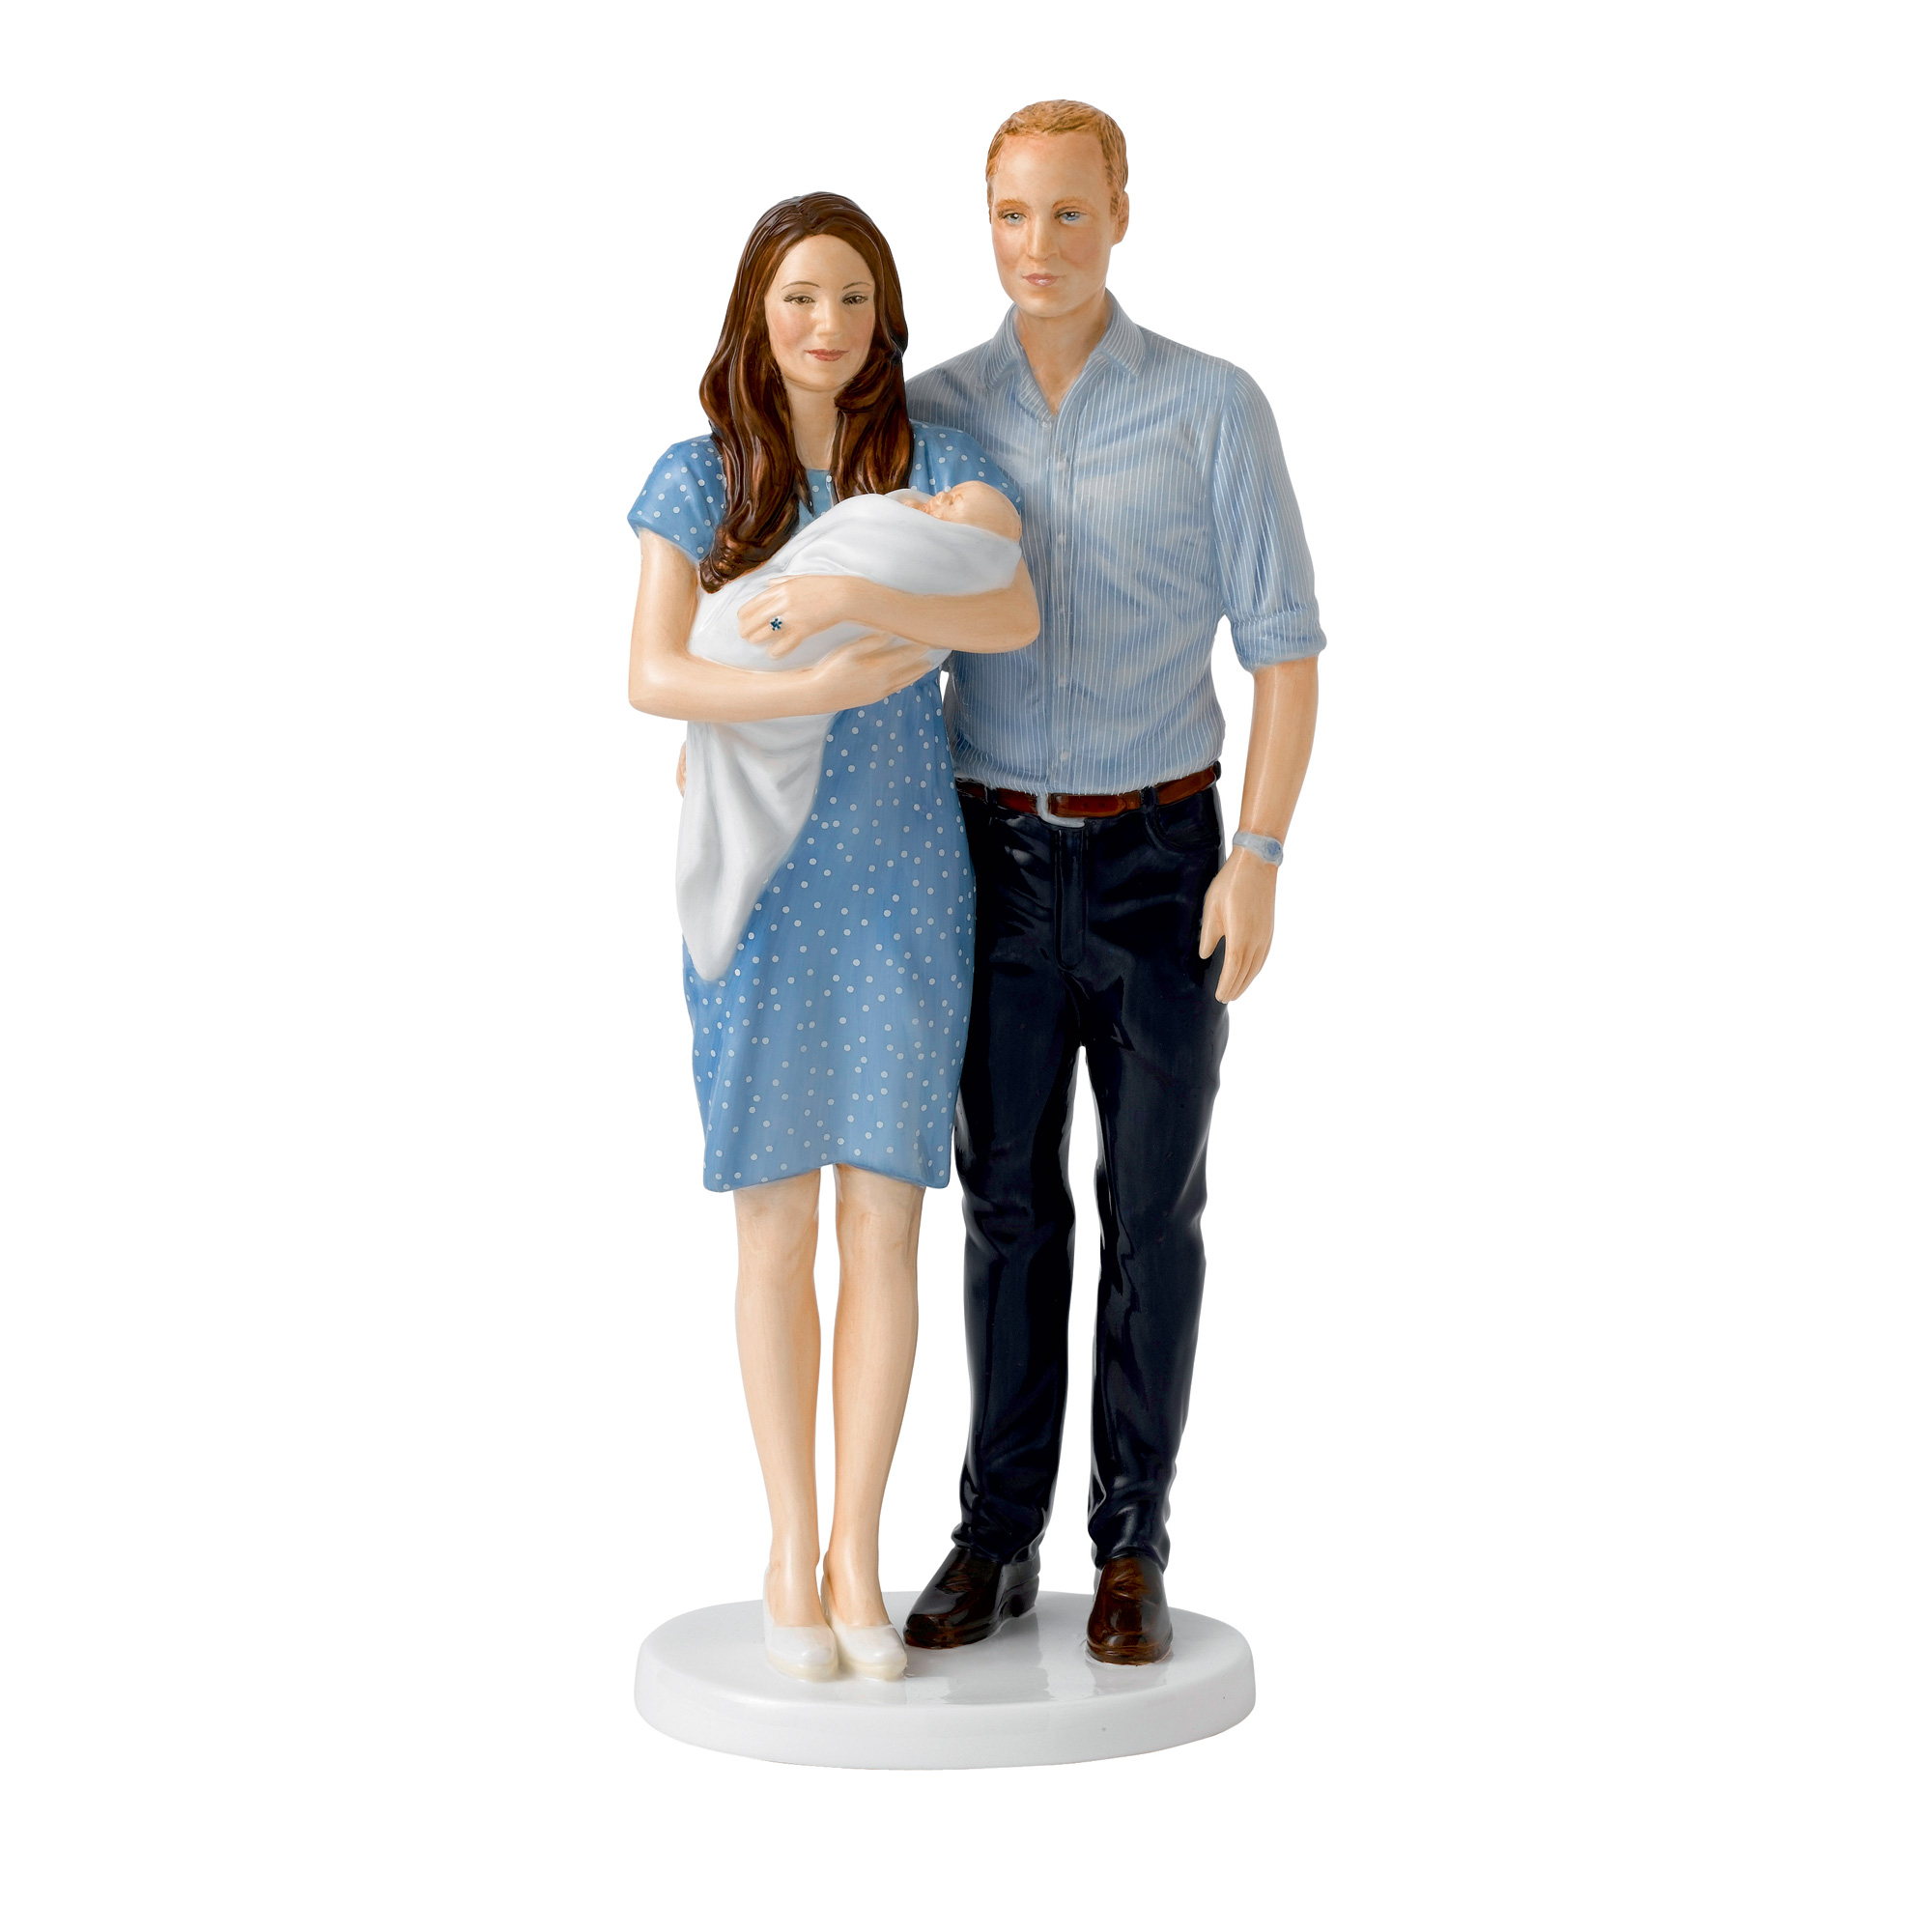 Prince George _SP HN5716 - Royal Doulton Figurine